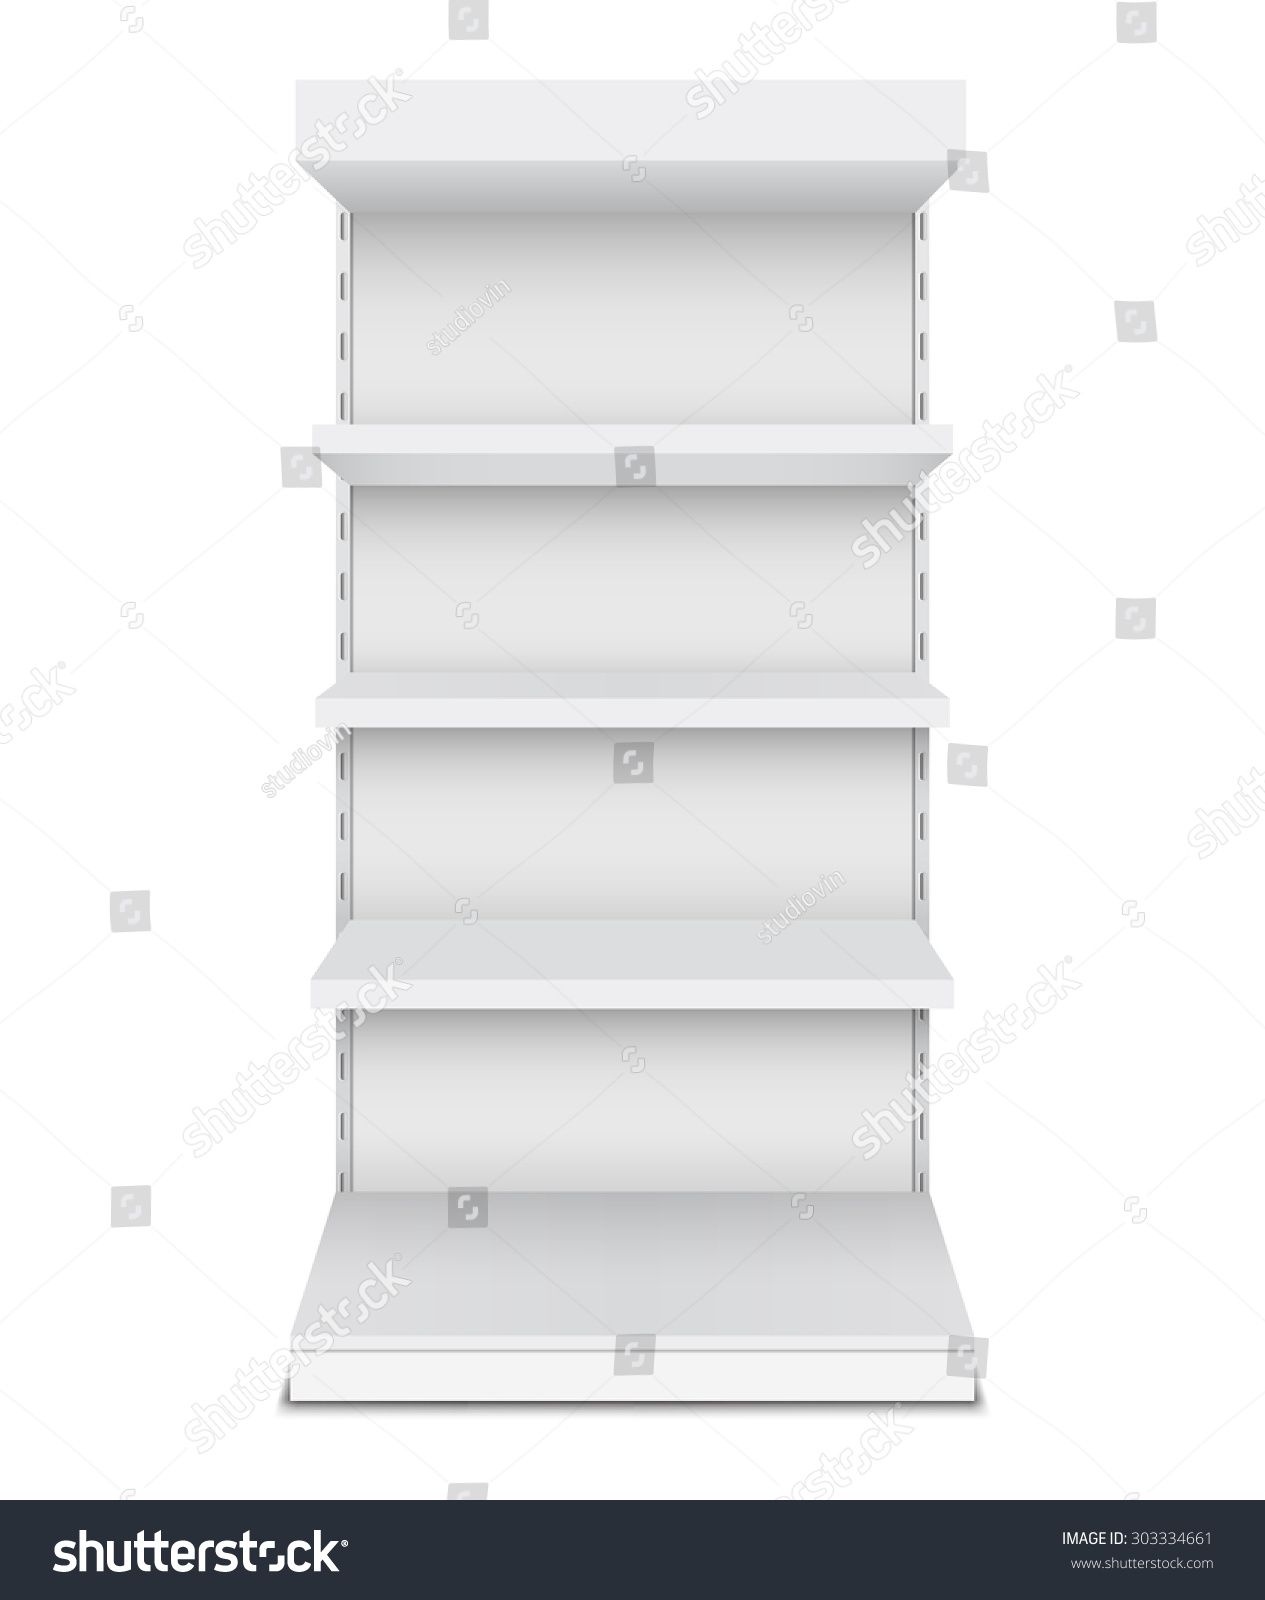 Exhibition Stand Shelves : Exhibition stand shelves isolated on white stock vector royalty